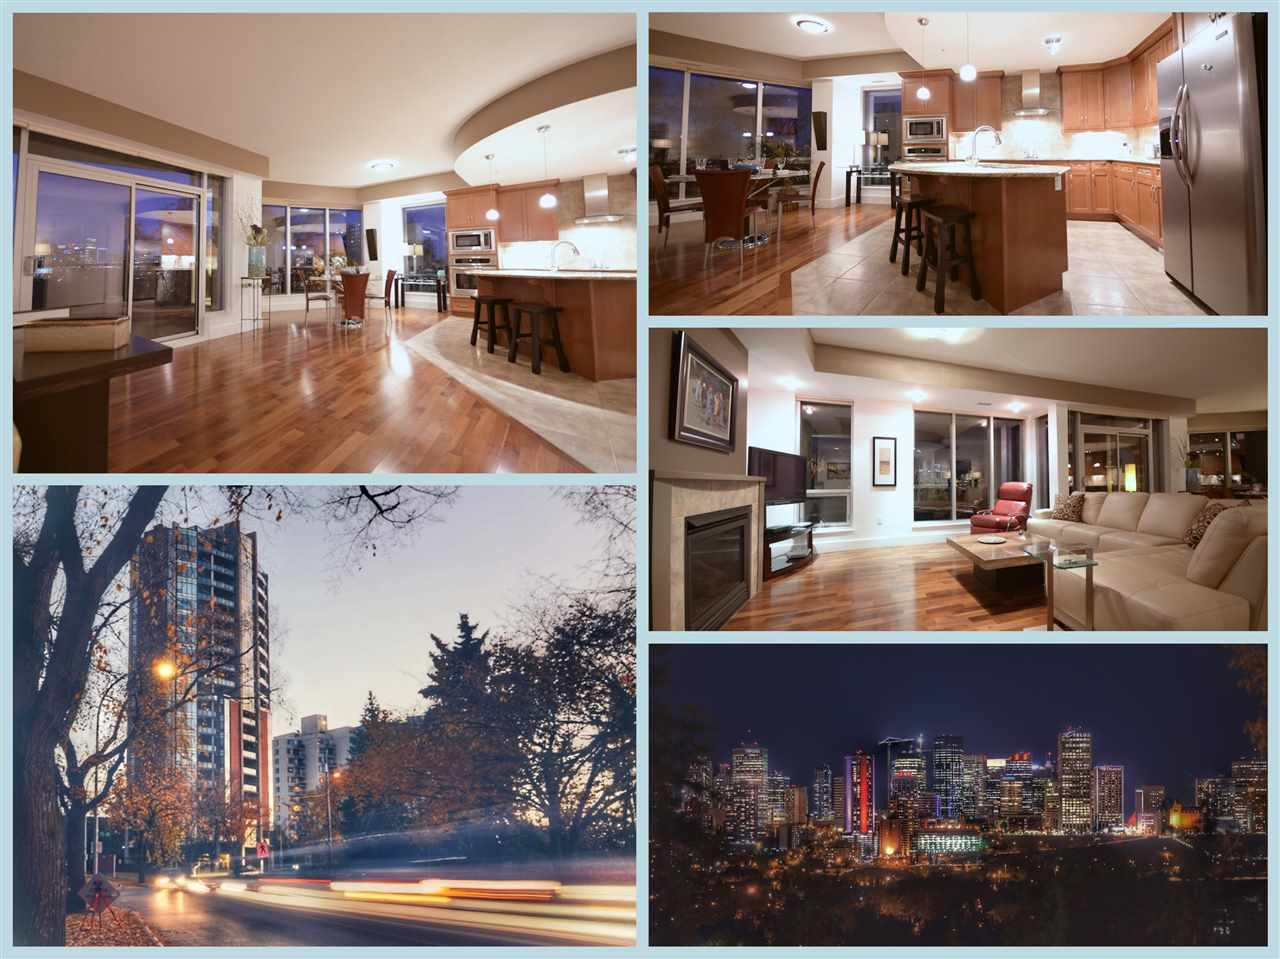 Main Photo: 302 10035 SASKATCHEWAN Drive in Edmonton: Zone 15 Condo for sale : MLS® # E4084661